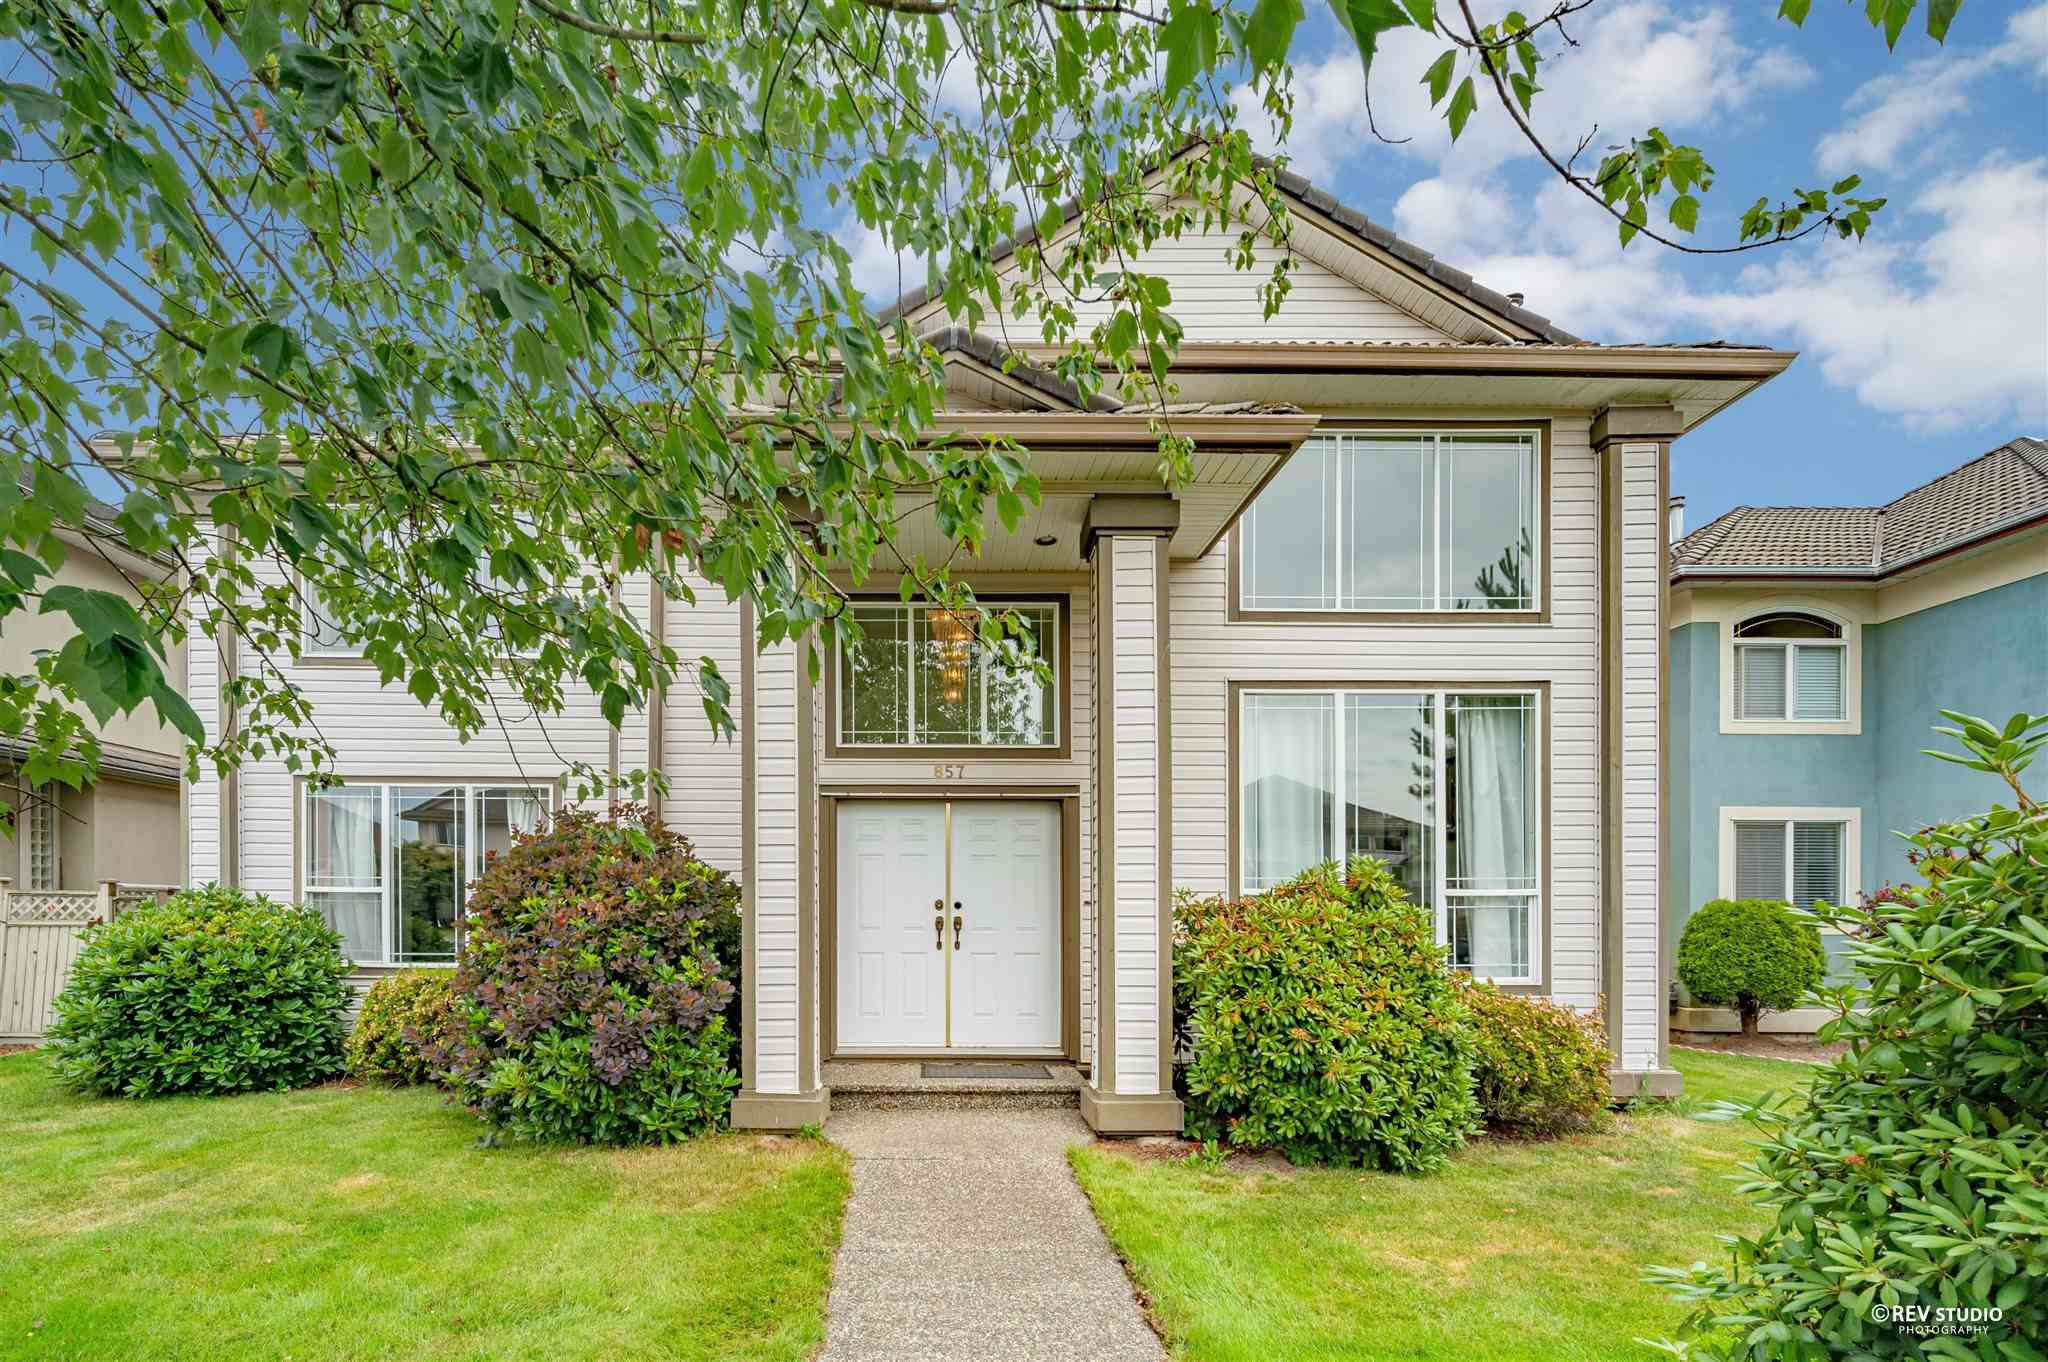 Main Photo: 857 RIVERSIDE DRIVE in Port Coquitlam: Riverwood House for sale : MLS®# R2599122